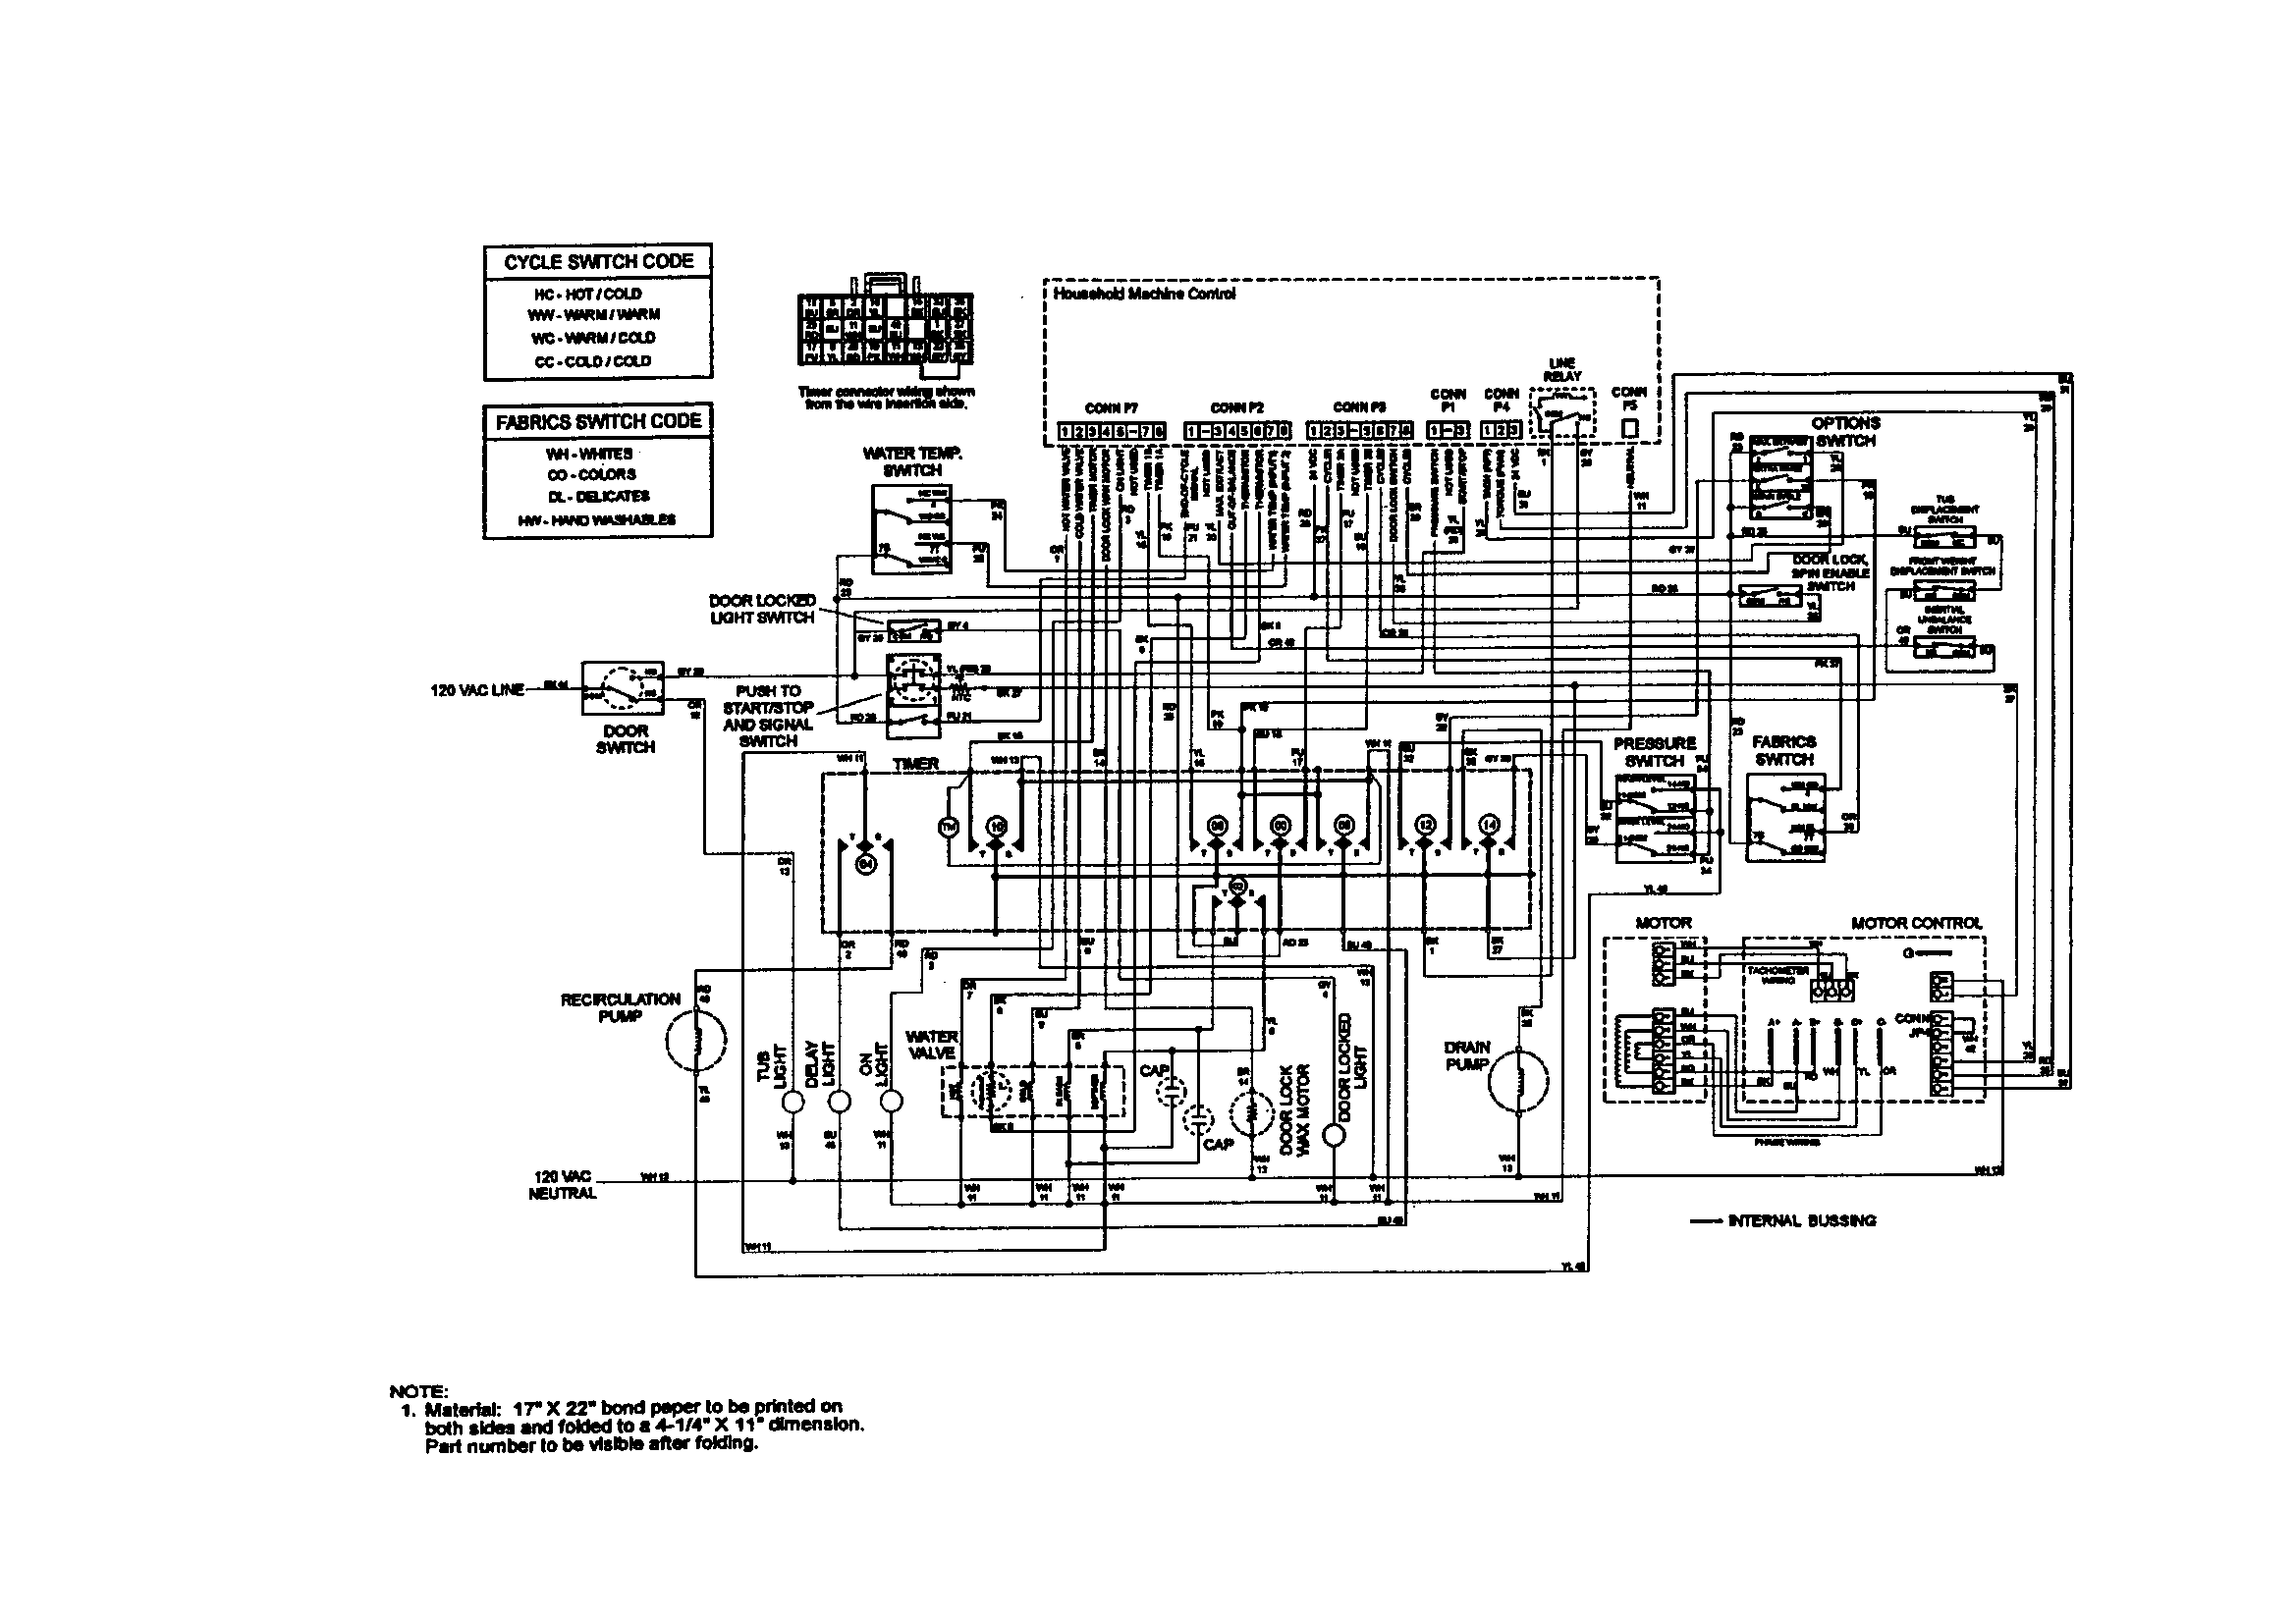 Goodman Model Gmp075 3 Wiring Diagram Goodman GMP075-3